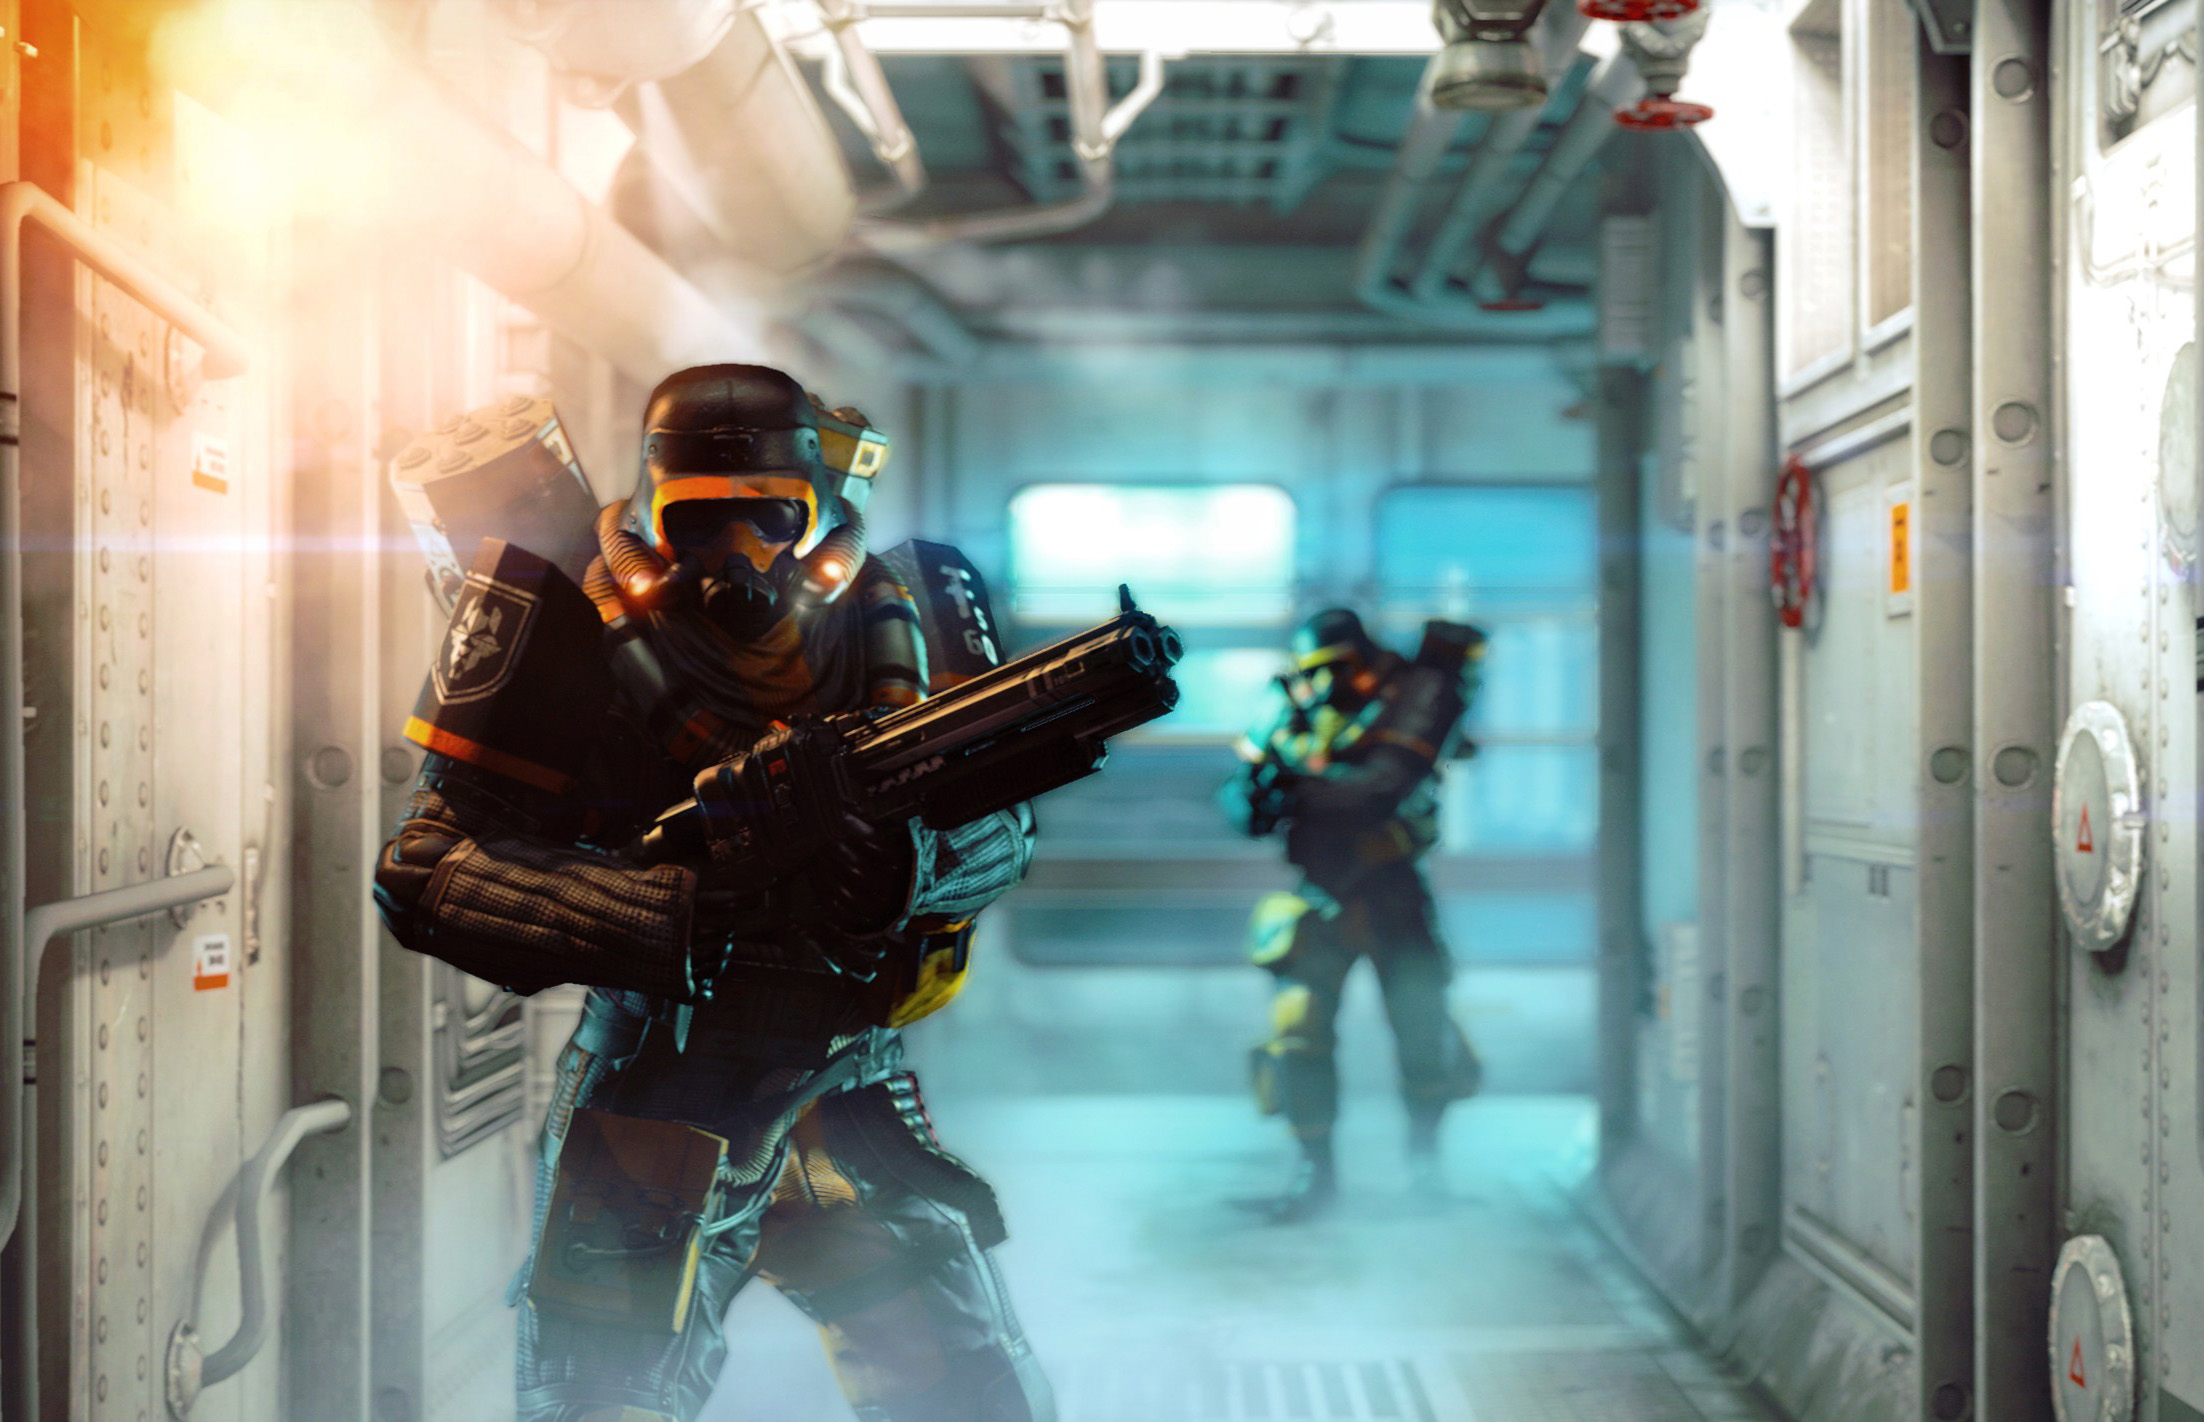 A scene from the video game, 'Wolfenstein: The New Order' by Bethesda Softworks.